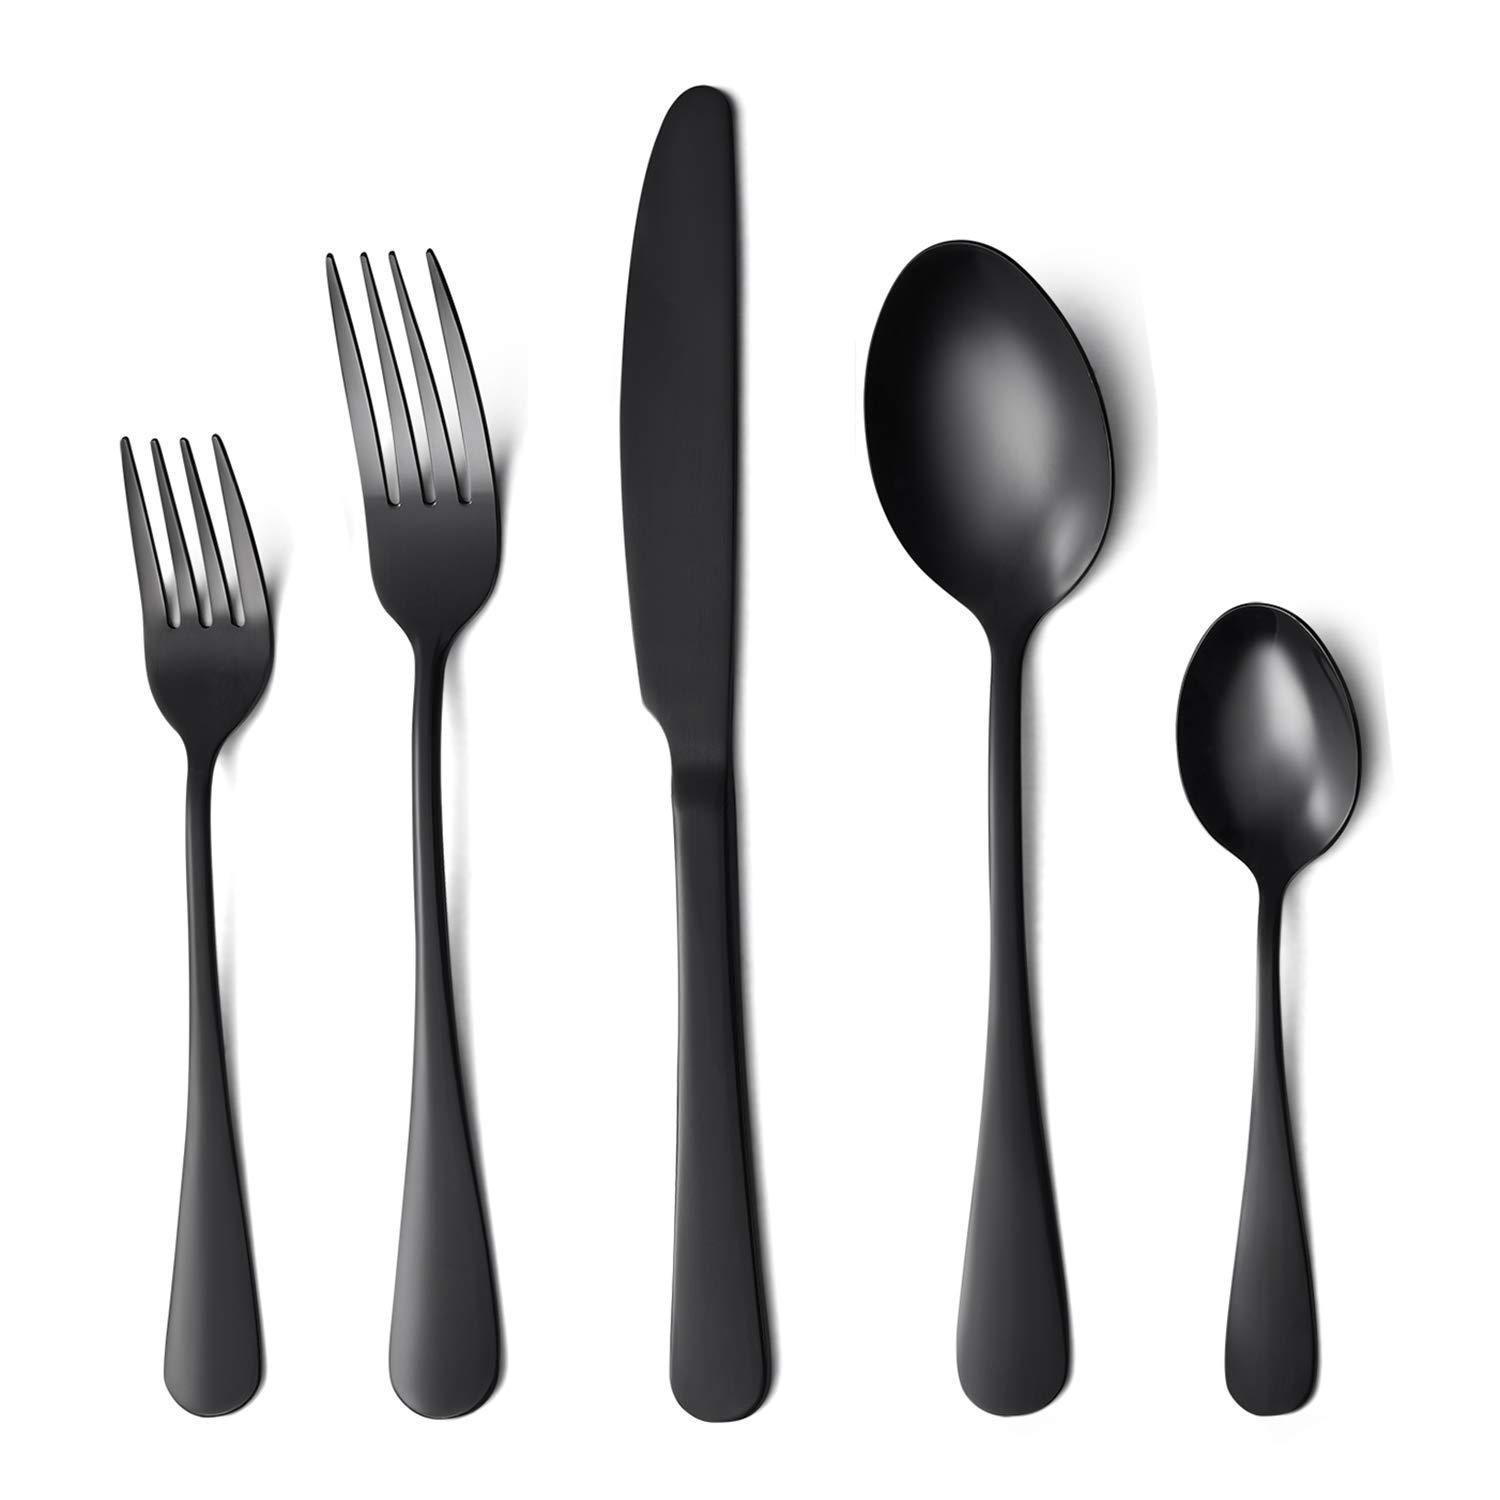 Flatware Set, 20-piece Silverware Cutlery Set with Serving Pieces, Heavy-duty Stainless Steel Utensils, Include Knife/Fork/Spoon, Mirror Finish, Dishwasher Safe, Service for 4 (Black)